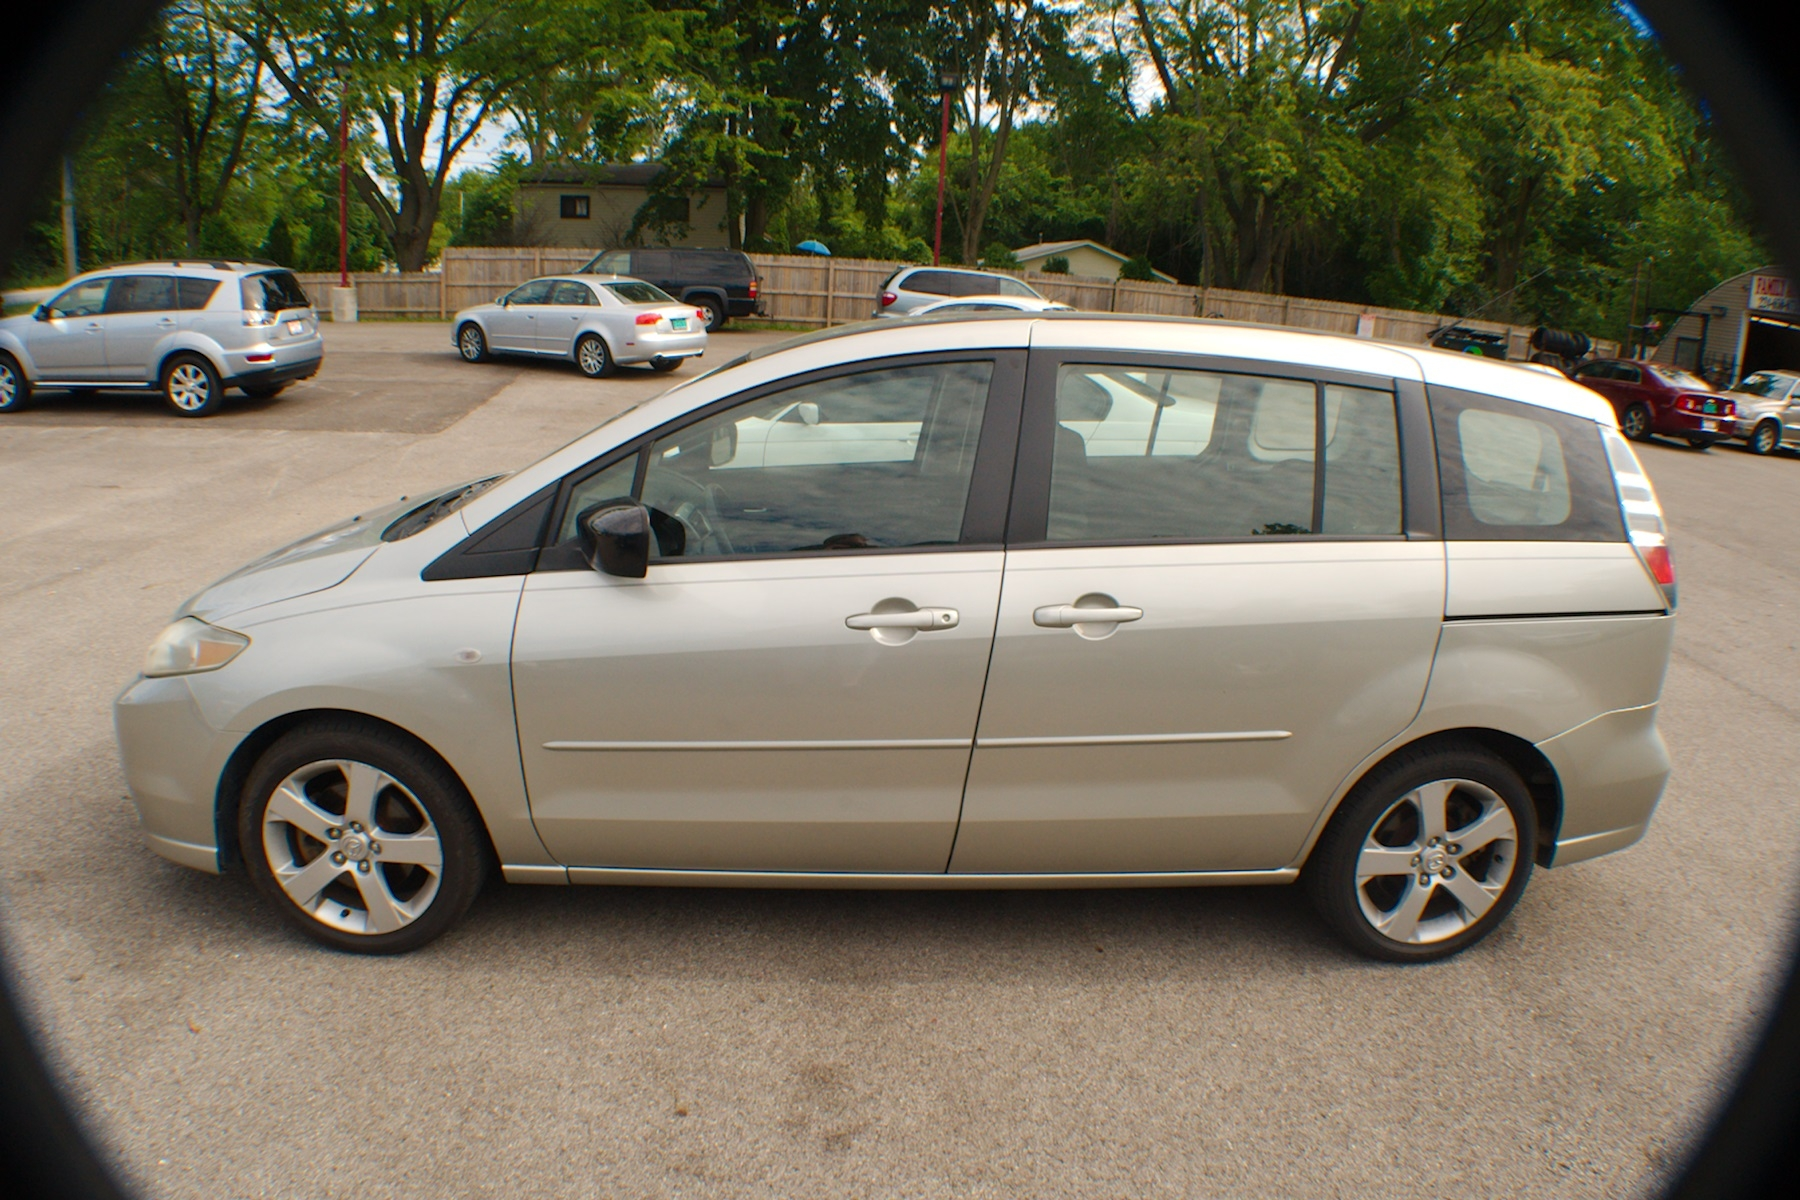 2006 Mazda 5 Pewter Compact Used Wagon Sale Antioch Zion Waukegan Lake County Illinois